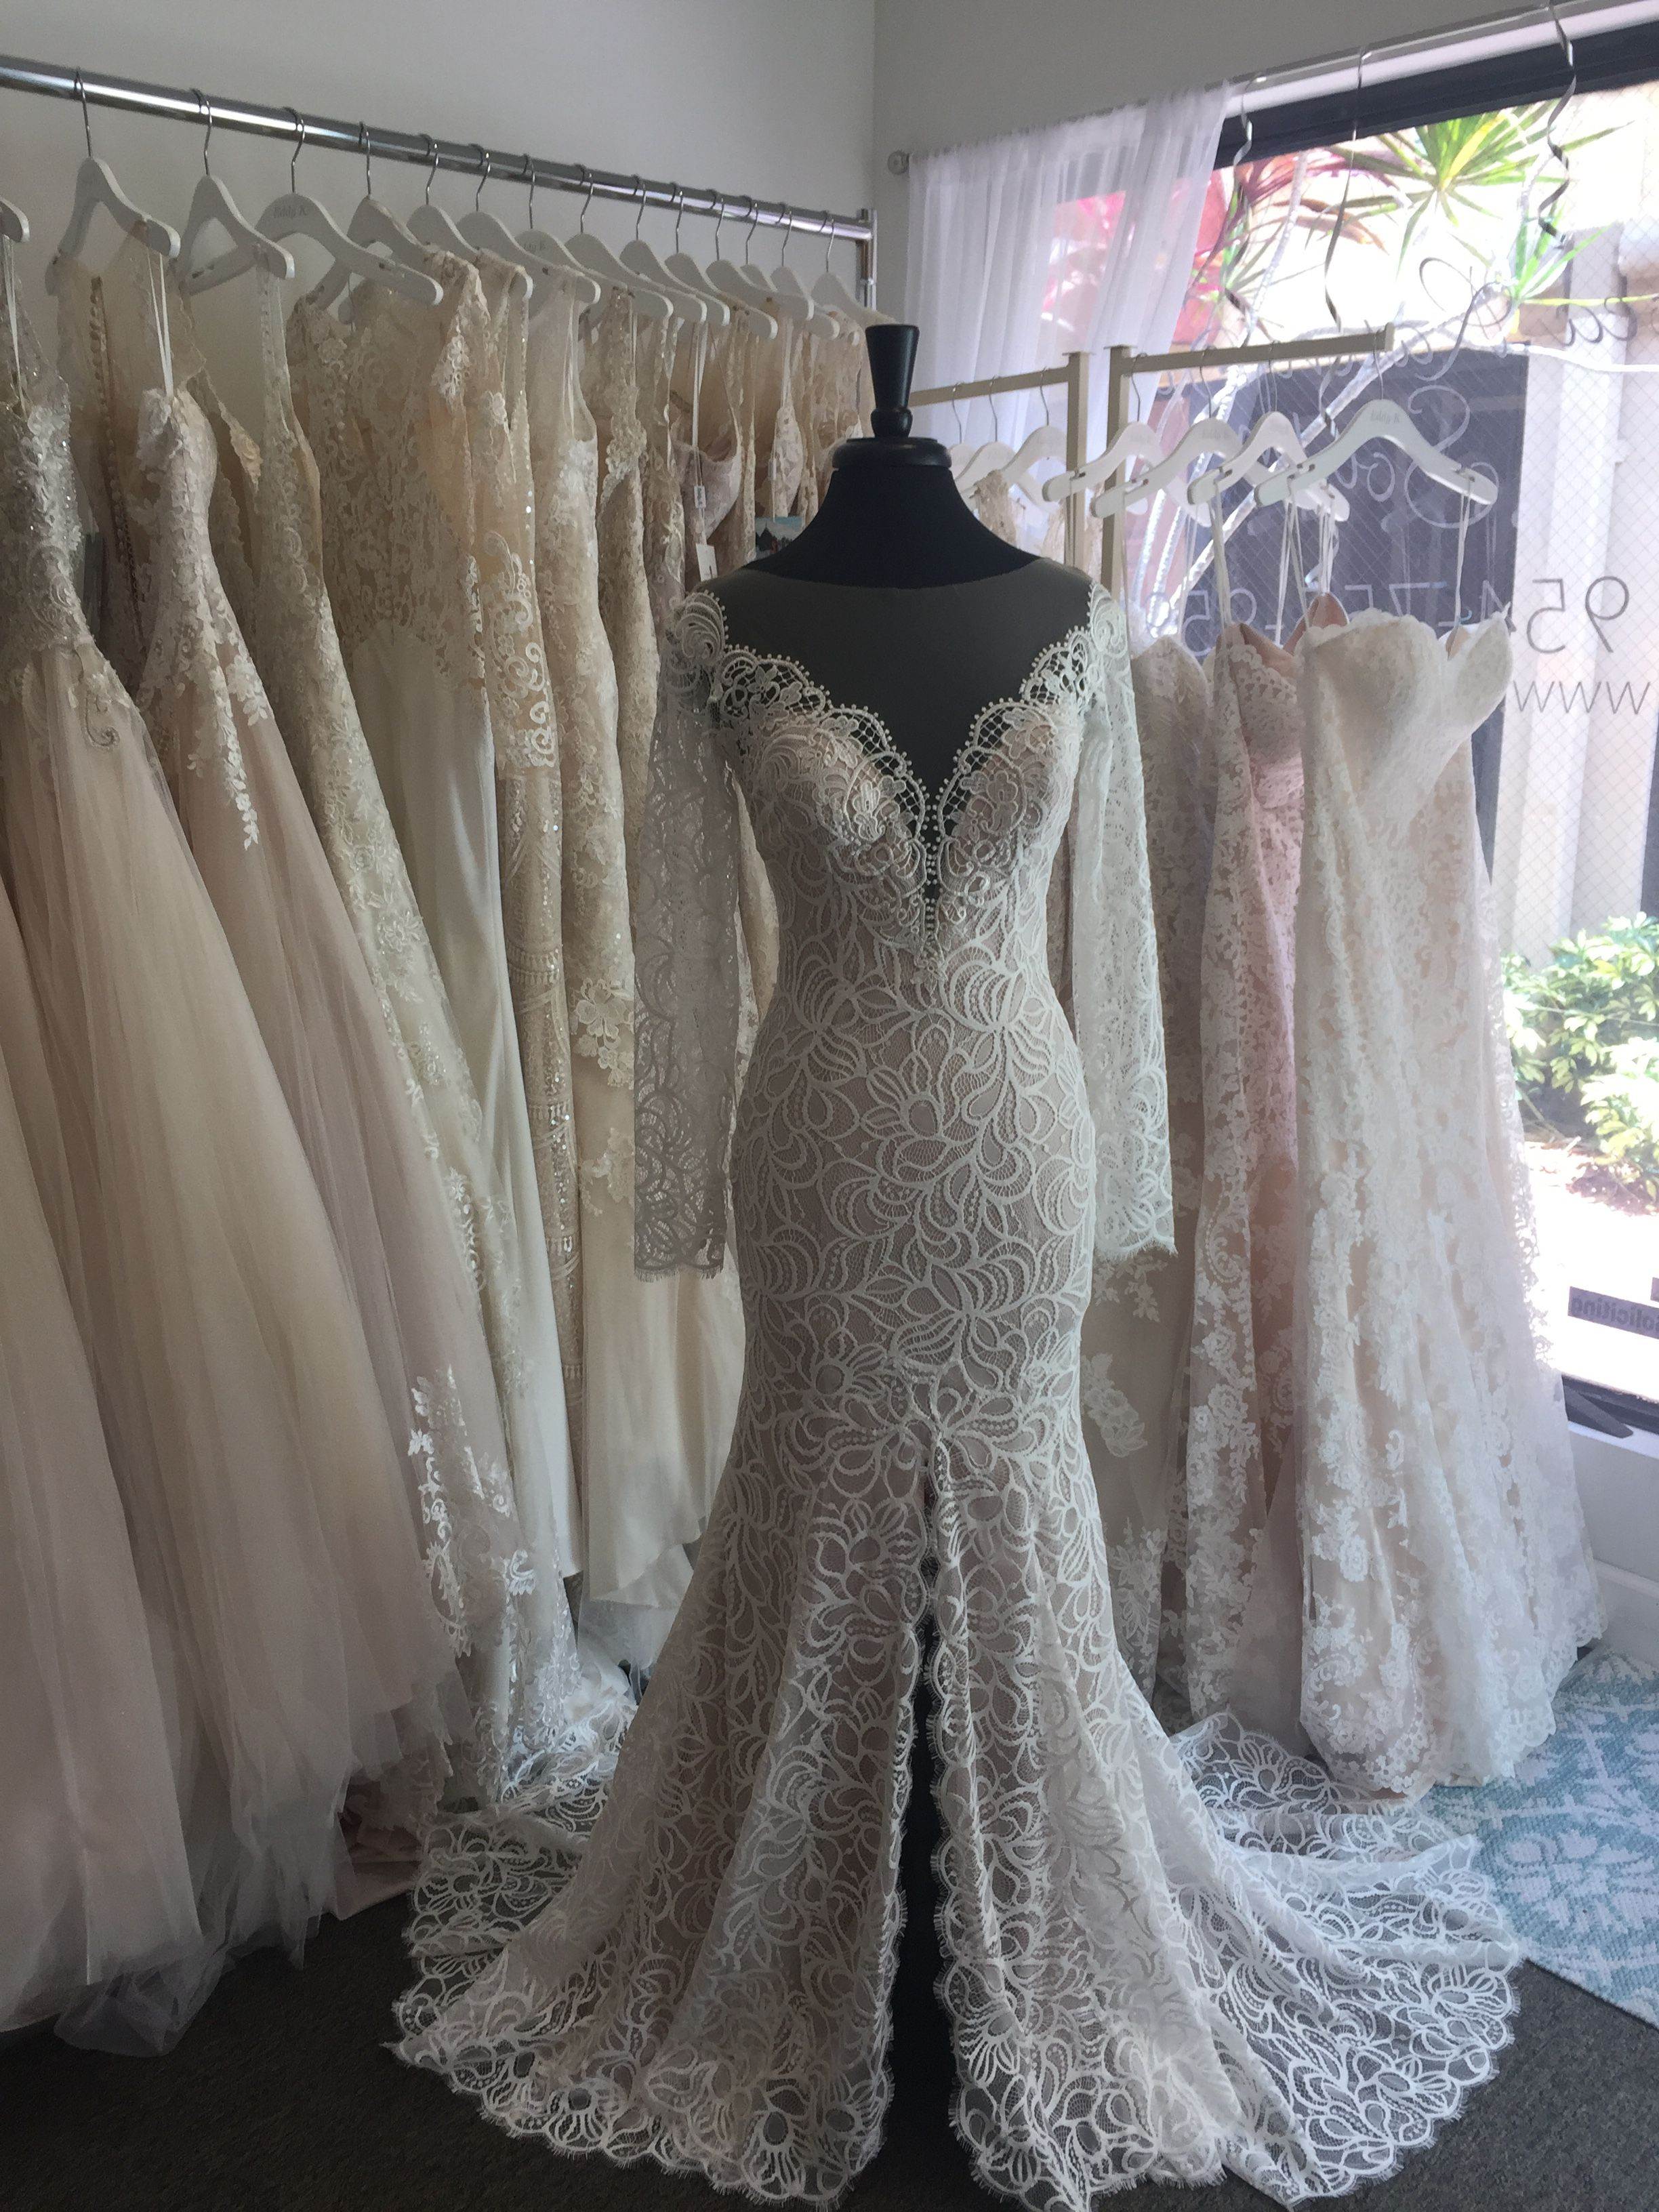 Renata by Eddy K Dreams 2018 available at our trunk show this